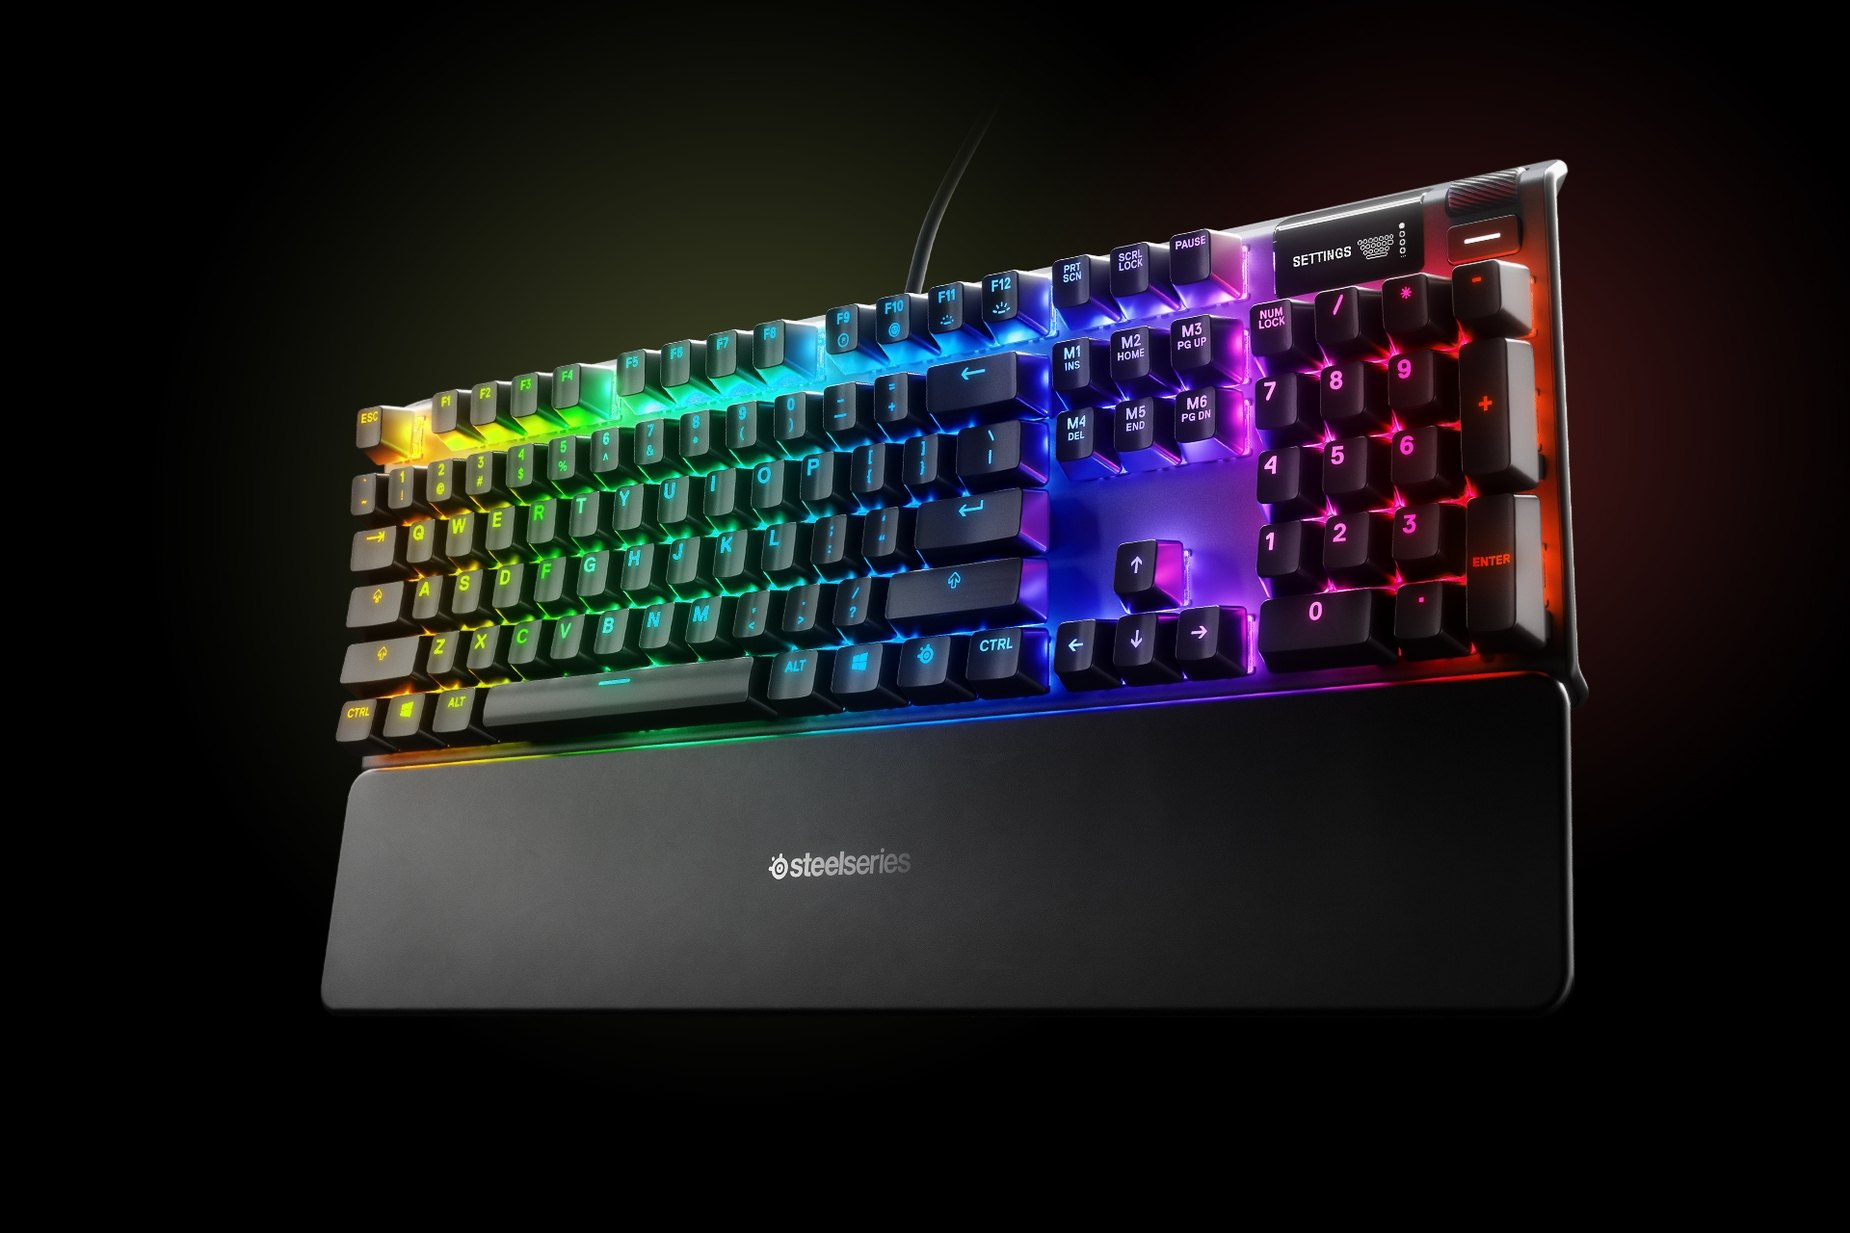 UK English - Apex 7 (Brown Switch) gaming keyboard with the illumination lit up on dark background, also shows the OLED screen and controls used to change settings and adjust audio